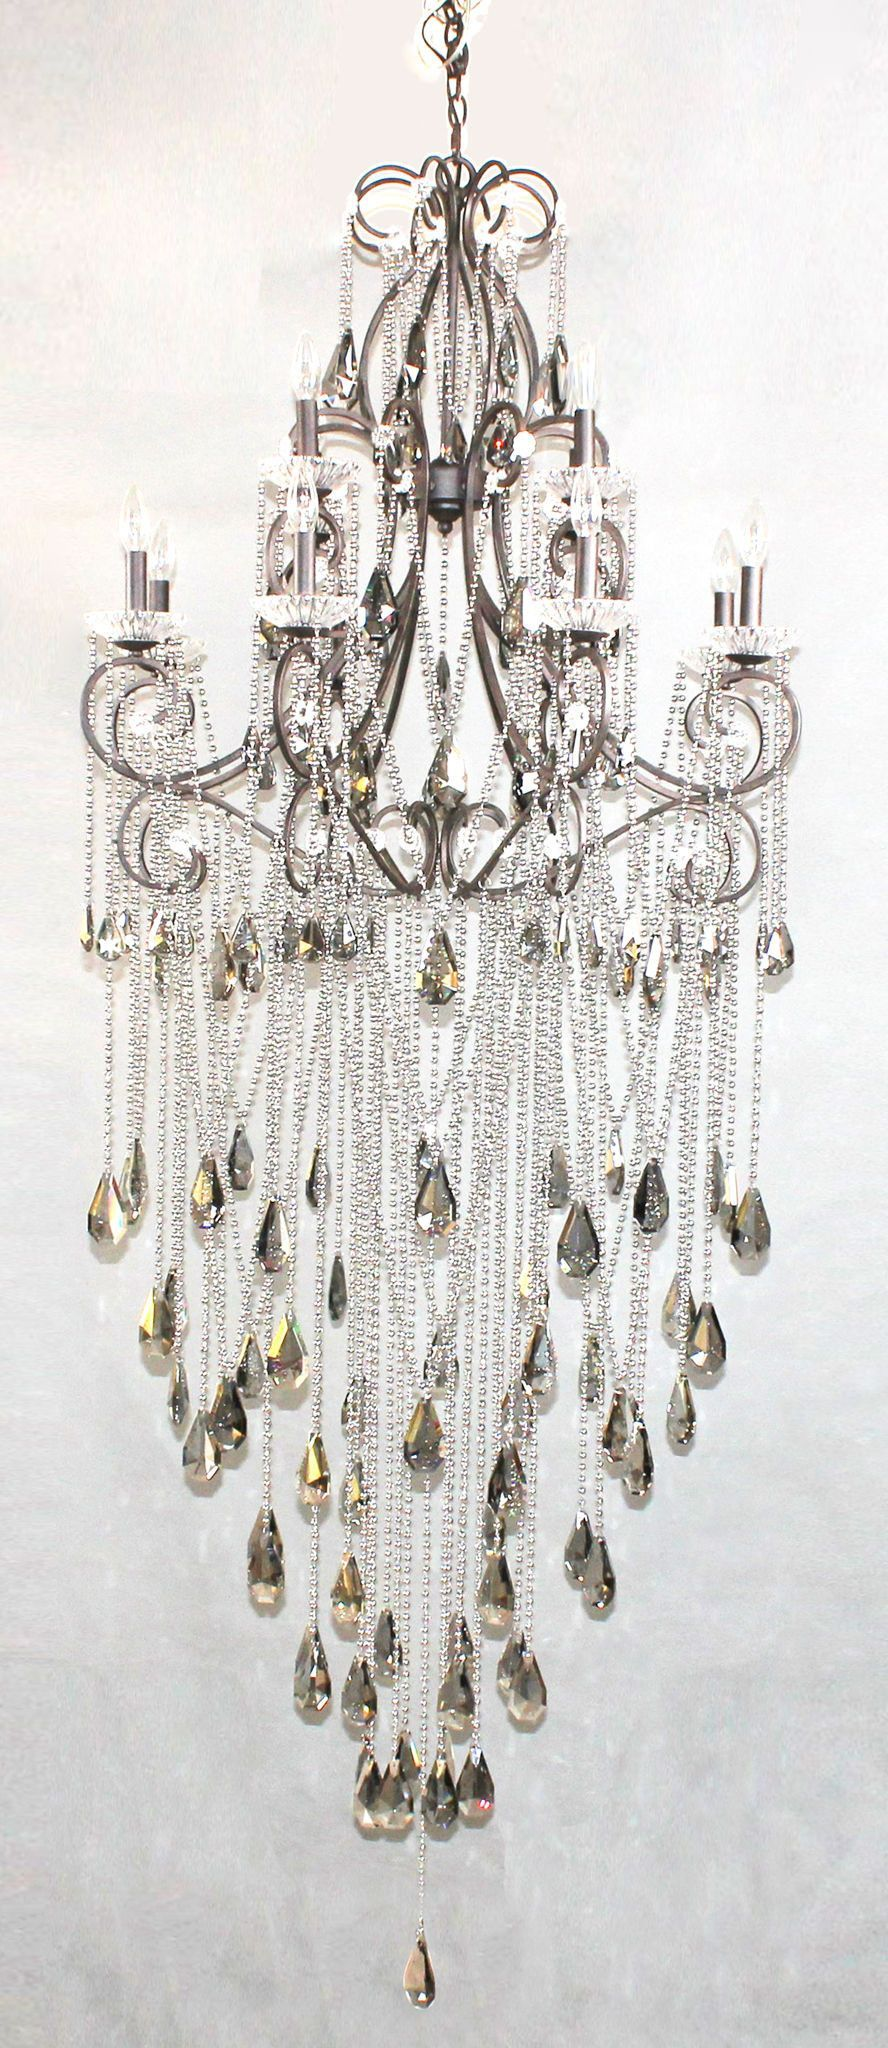 Charlotte chandelier chandeliers lights and tiny texas houses charlotte chandelier arubaitofo Image collections